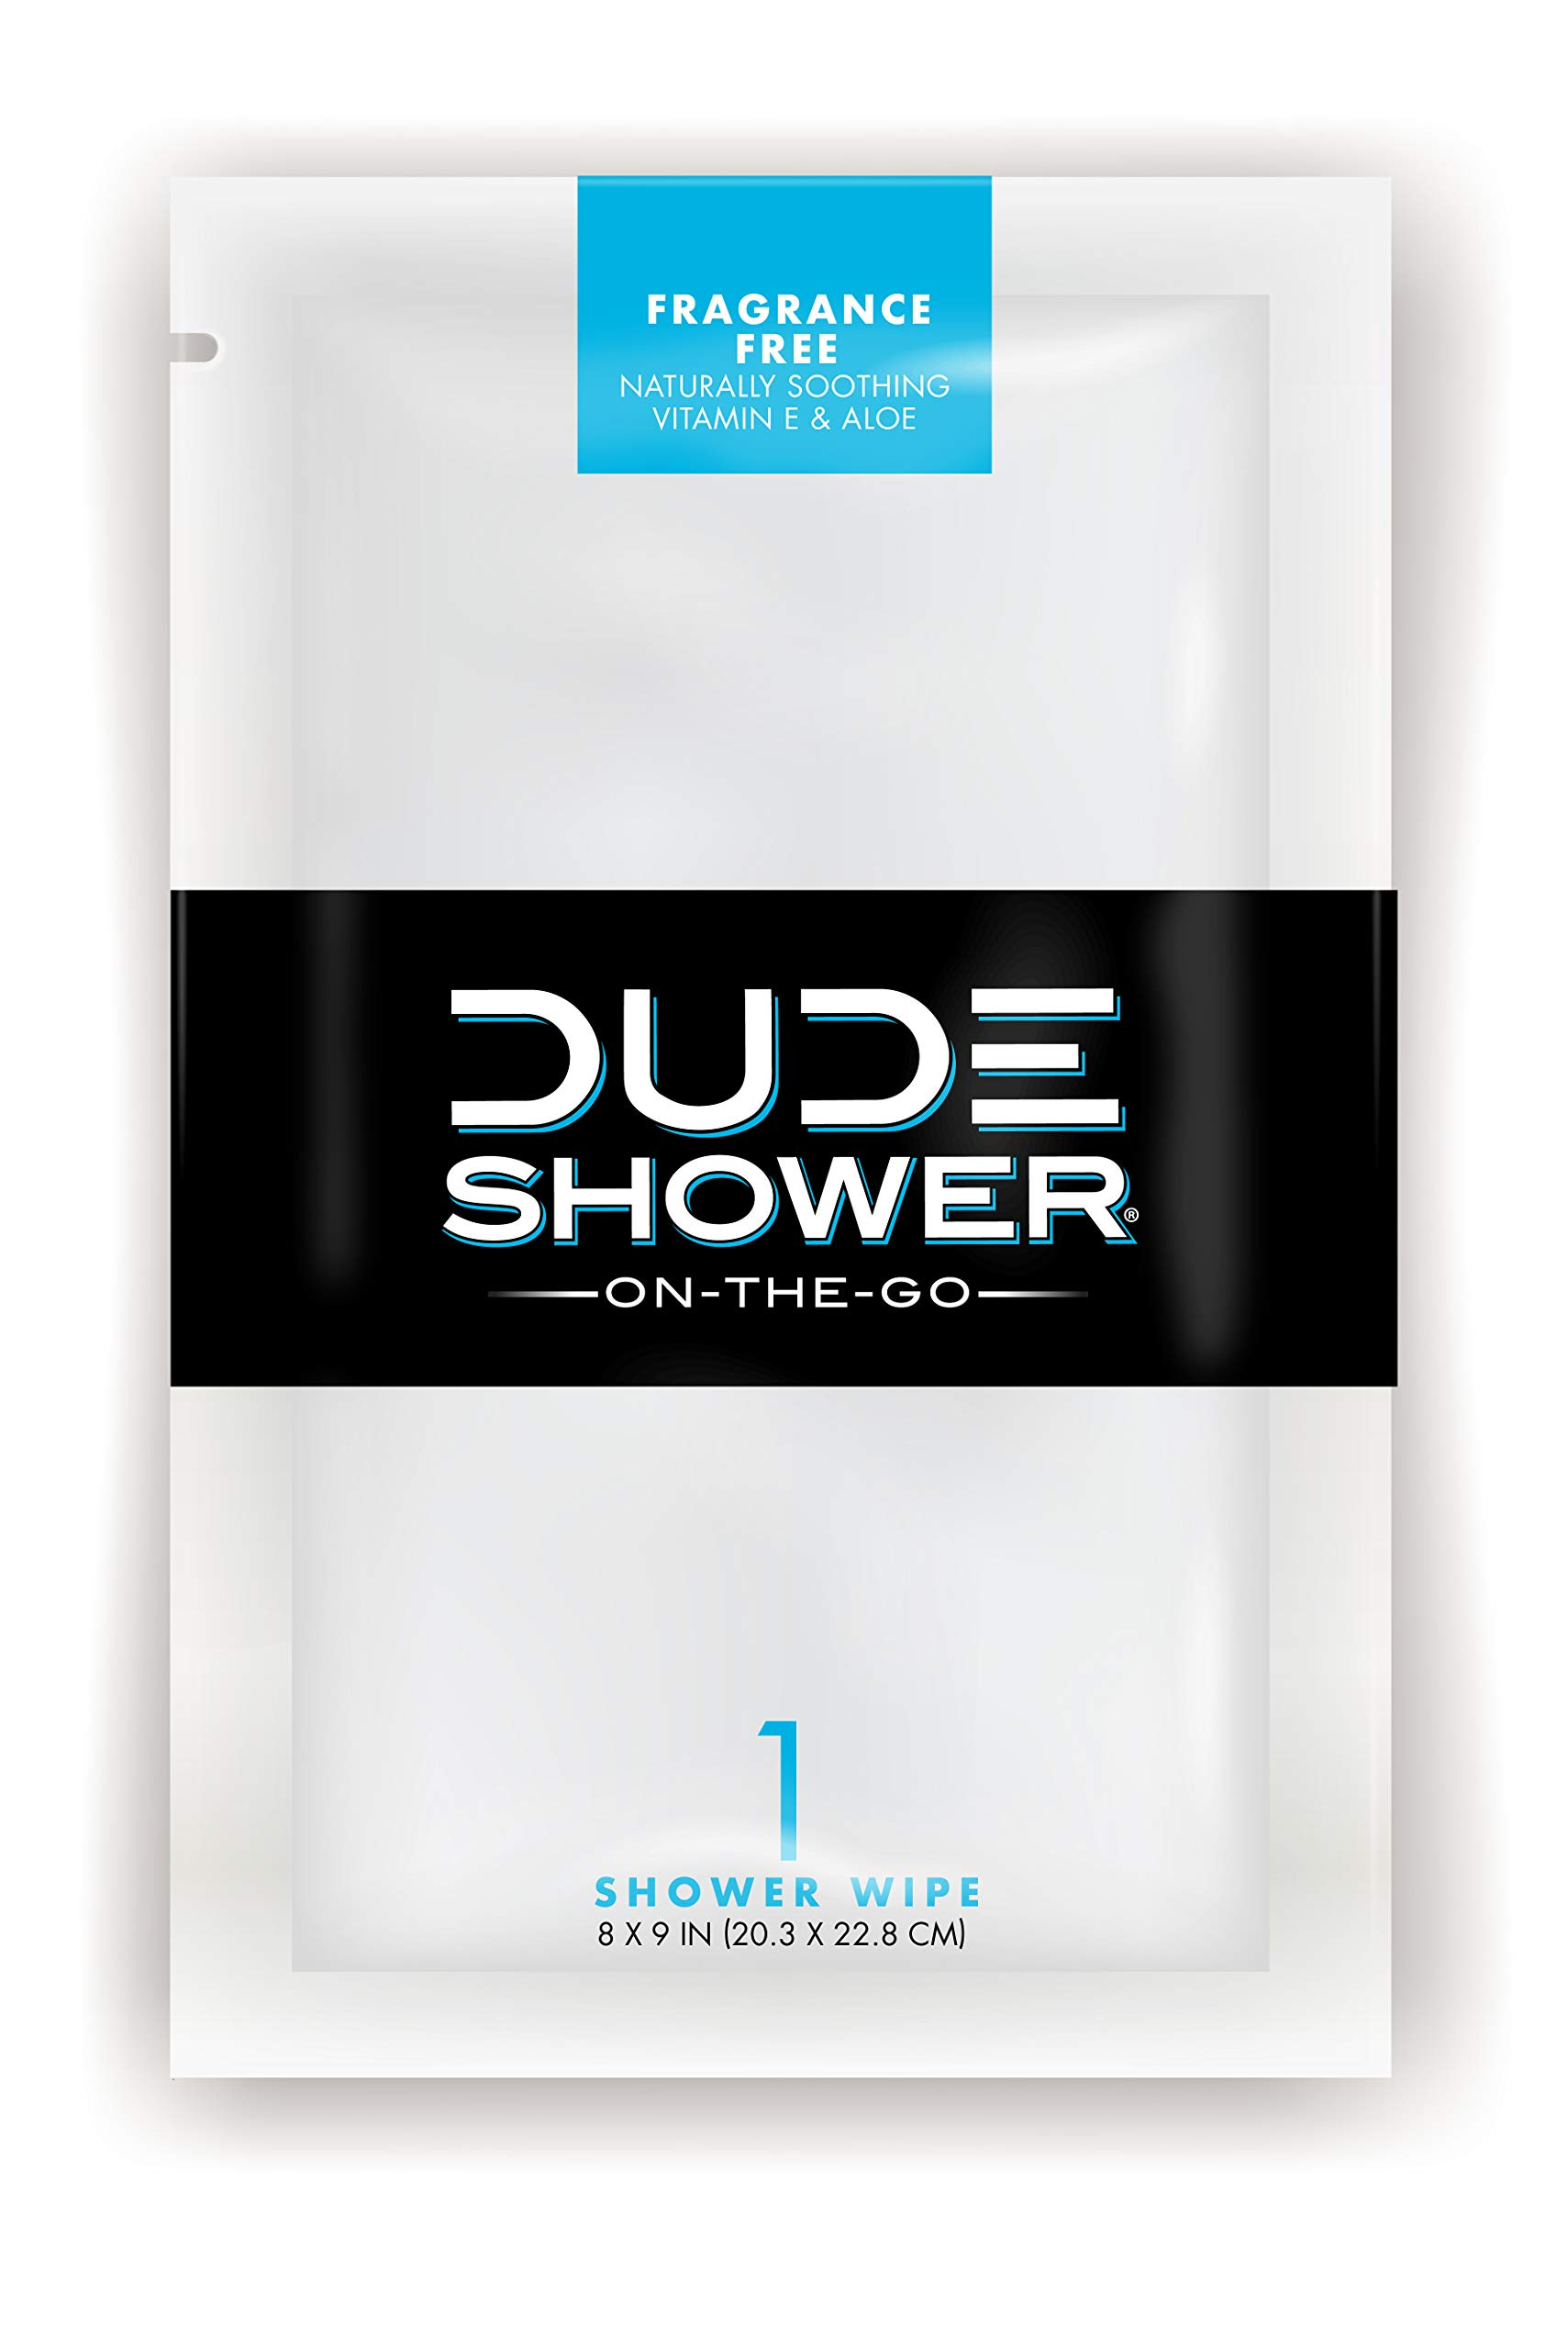 DUDE Shower Body Wipes 300pk On-The-Go Singles for Travel Unscented Naturally Soothing Aloe and Hypoallergenic